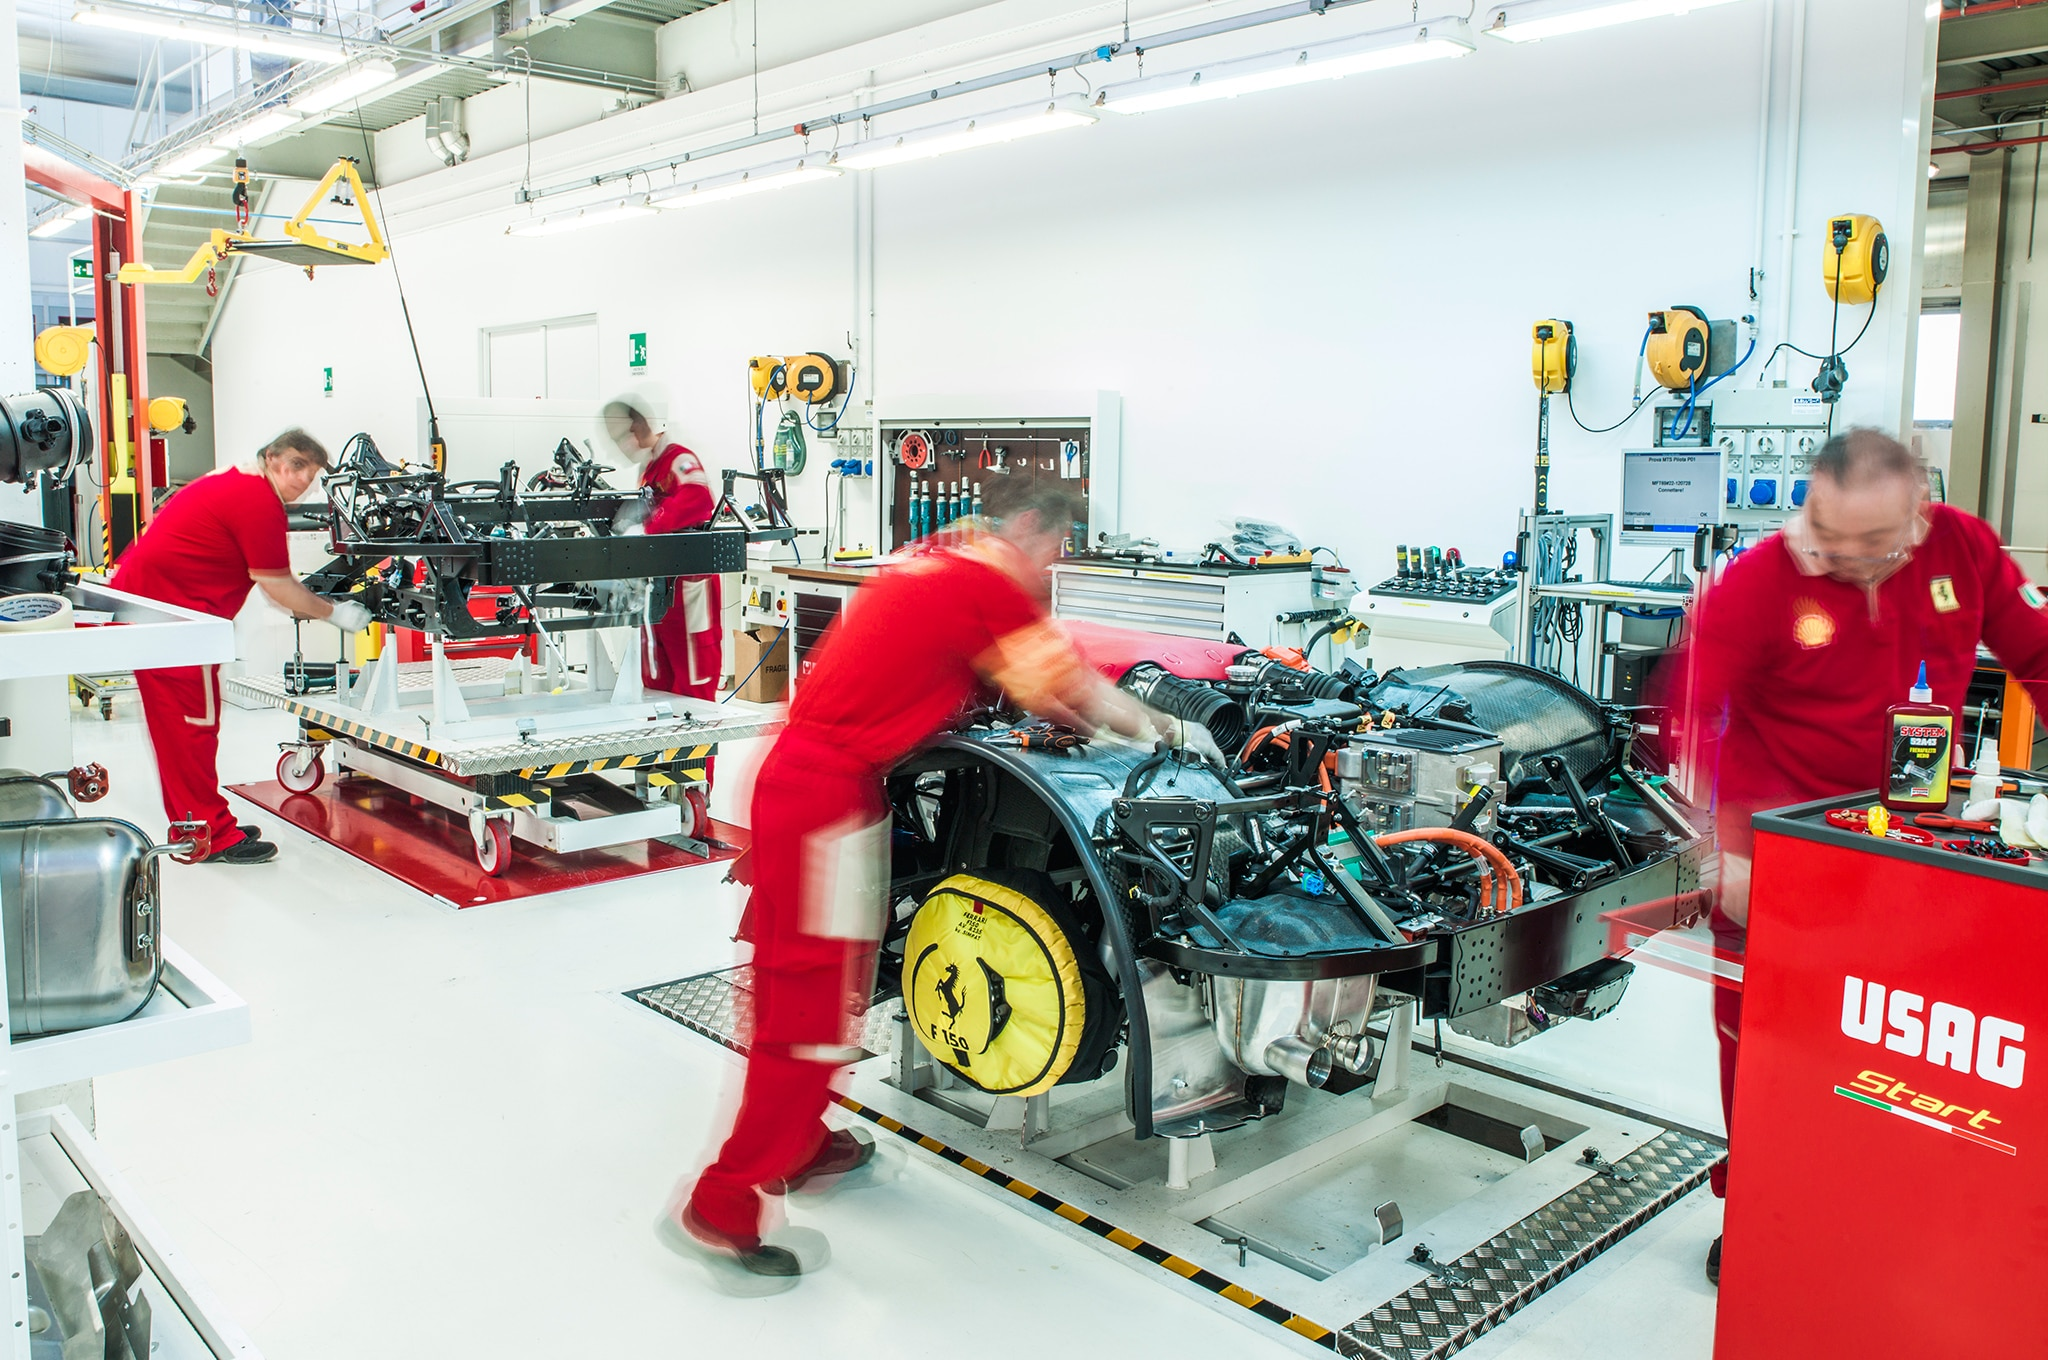 Ferrari technicians at work on the V-12 hybrid powertrain.